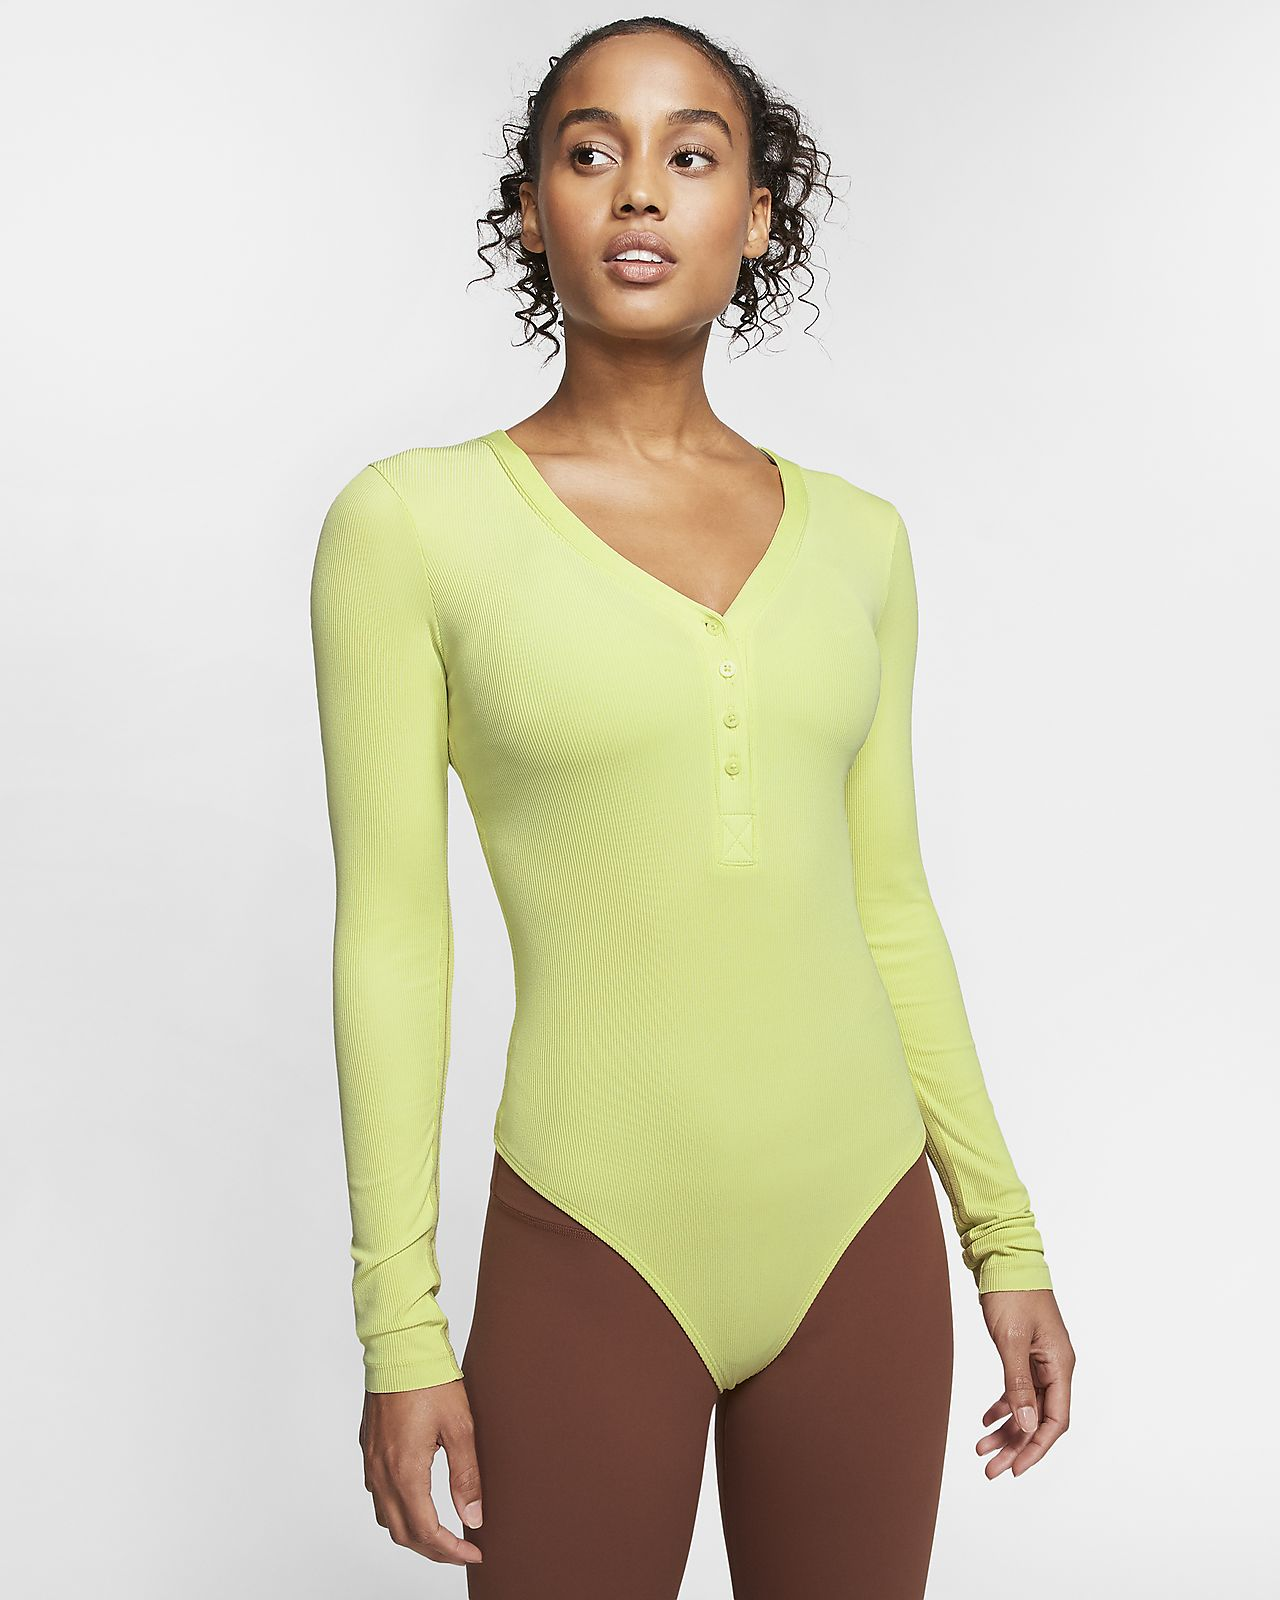 Nike Yoga Luxe Women's Infinalon Long-Sleeve Bodysuit